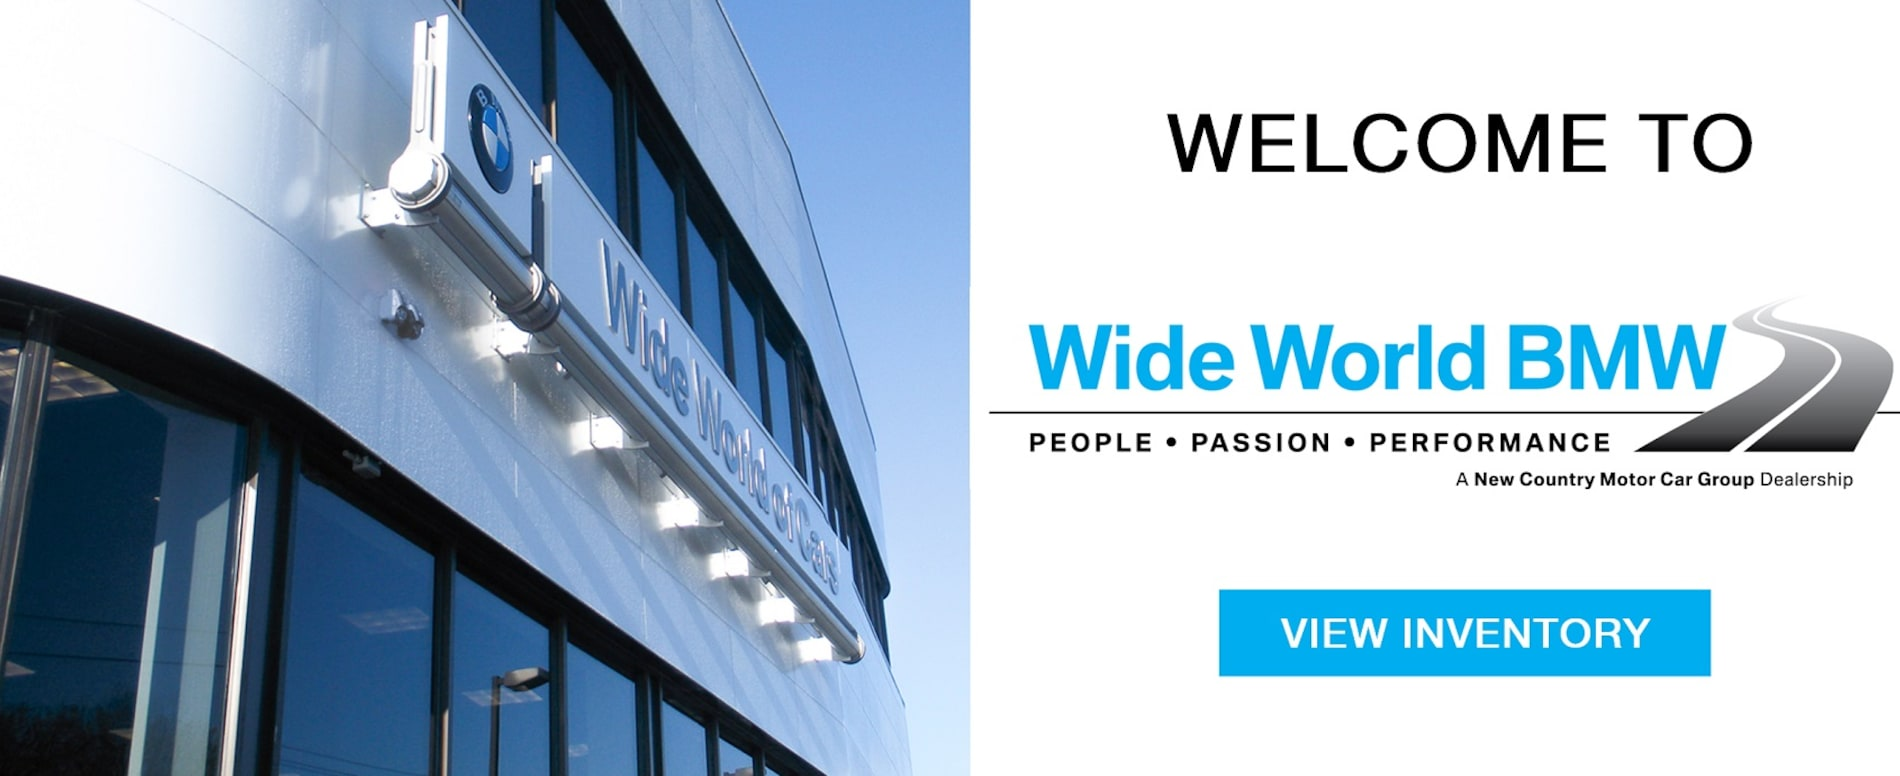 Welcome to Wide World BMW | Spring Valley, NY BMW Sales & Service